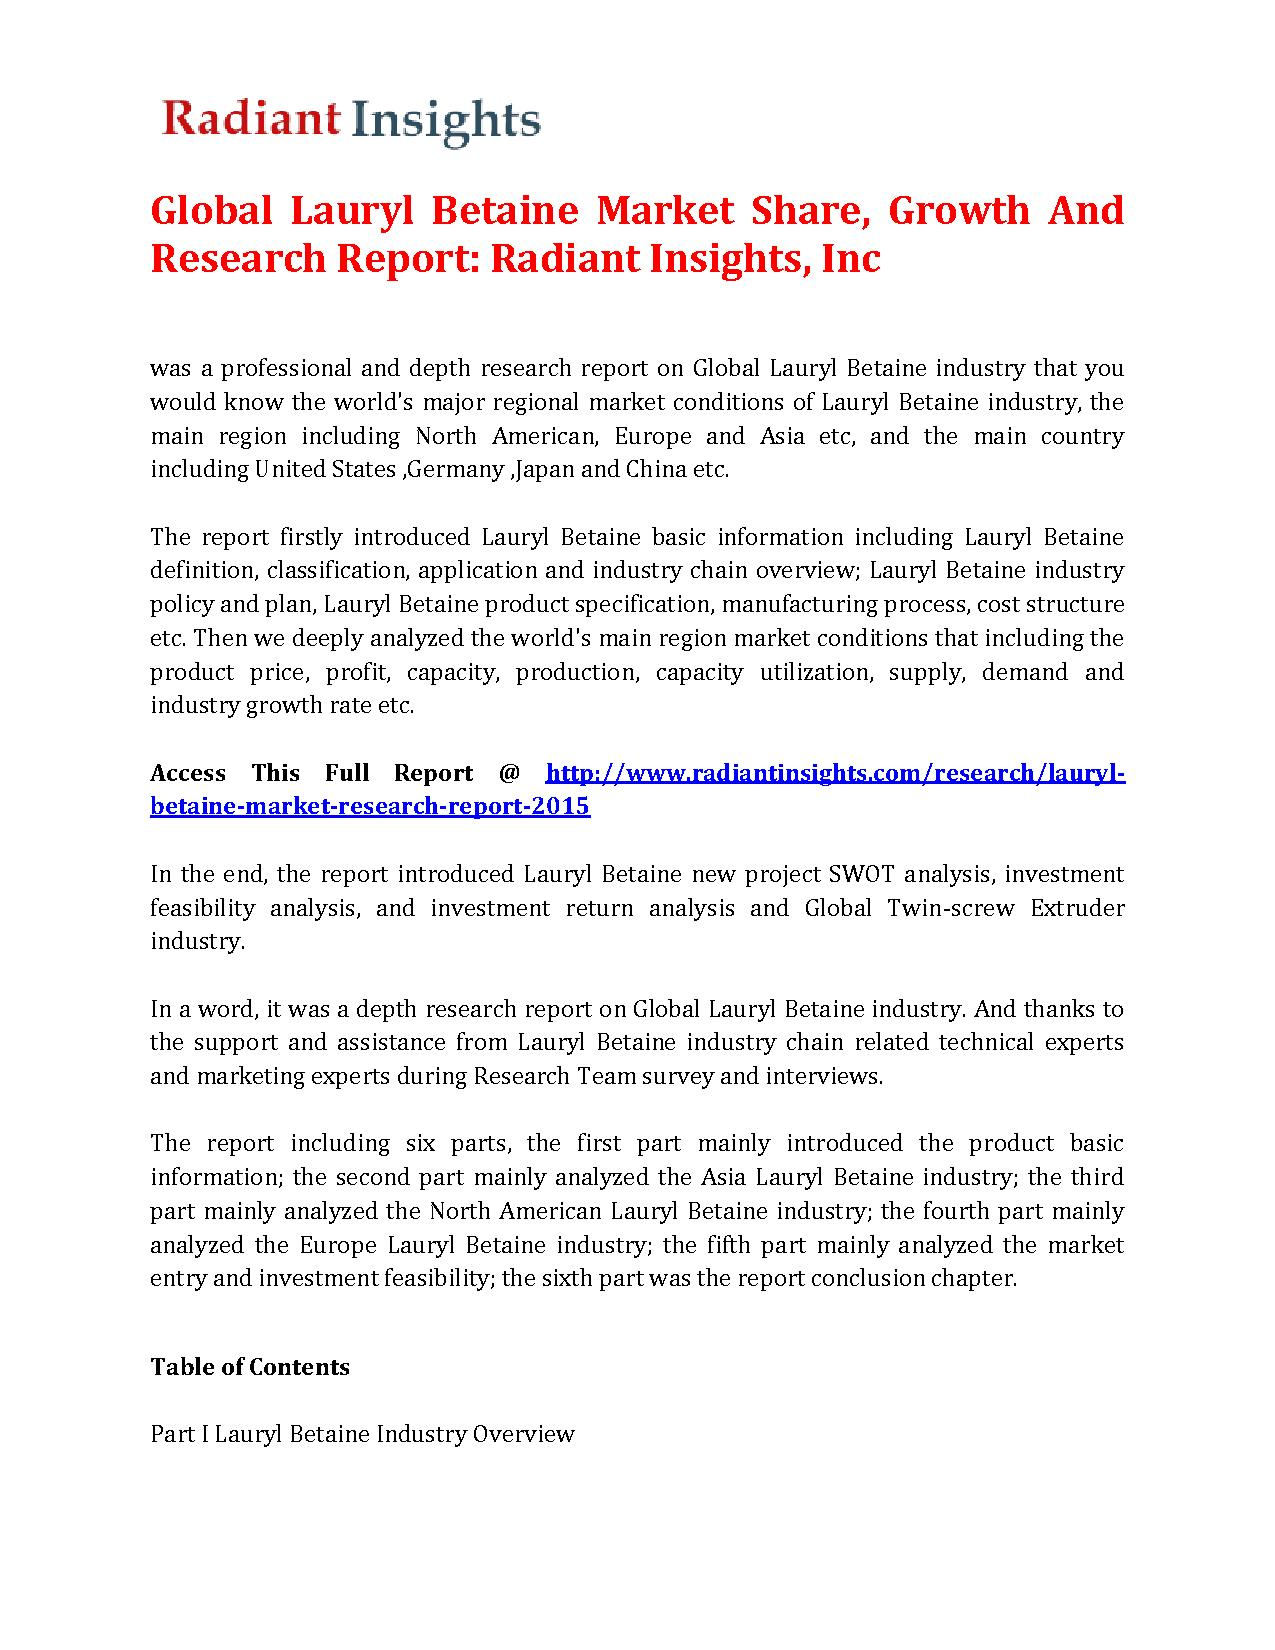 Global Lauryl Betaine Market Size, Competitive Trends Report